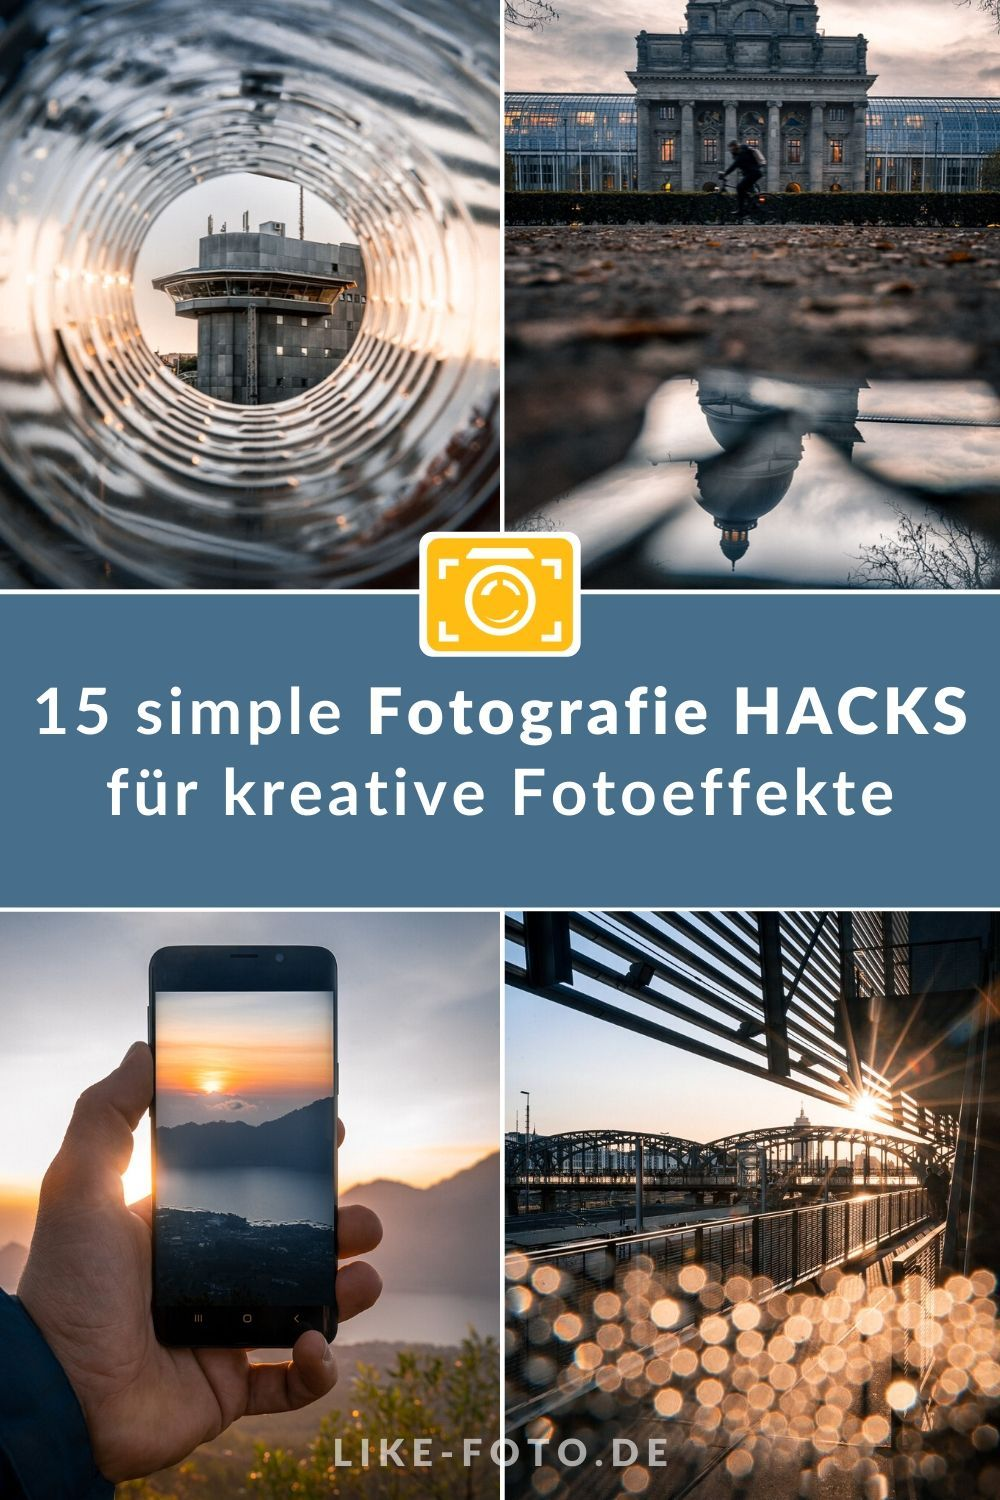 14 simple Fotografie HACKS für kreative Fotoeffekte – like-foto.de